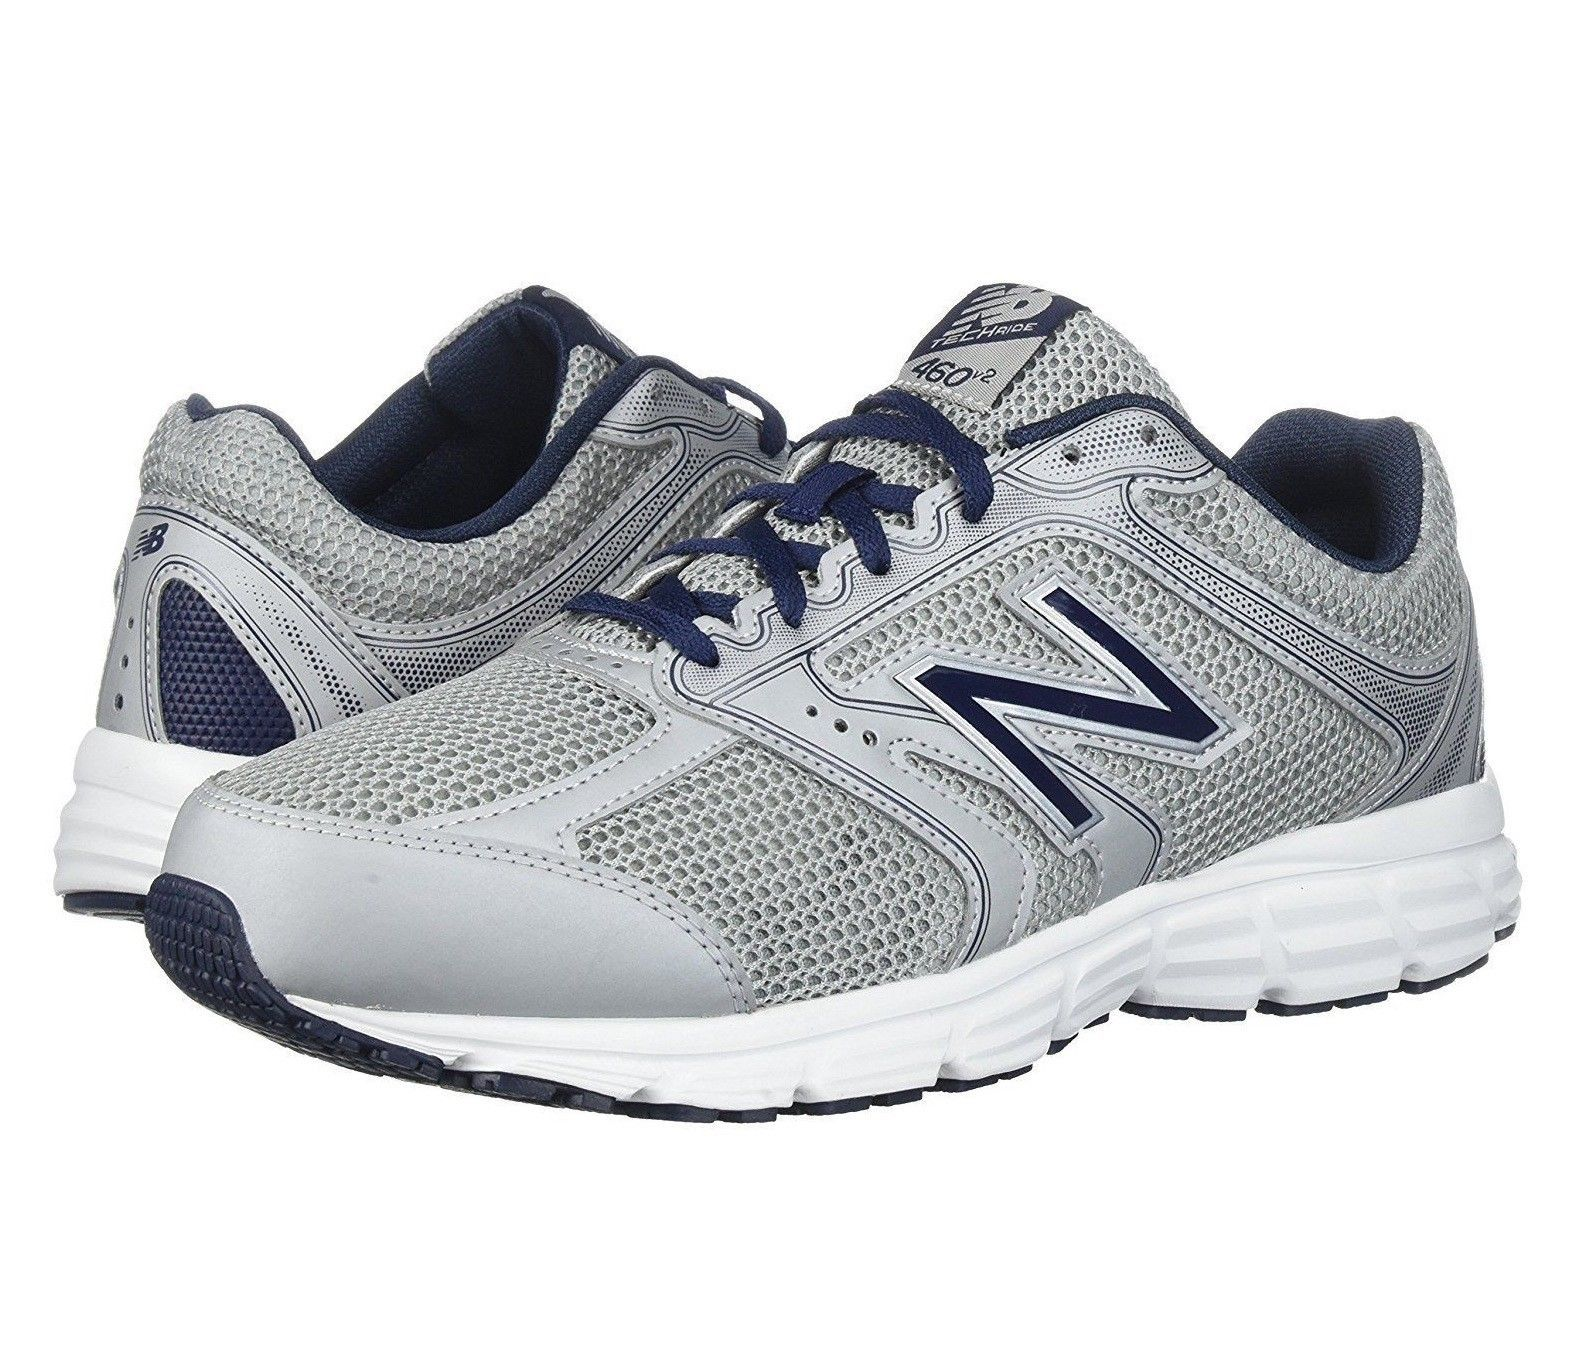 New Balance 460v2 Grey Running Shoes Men's Size 10 M460LC2